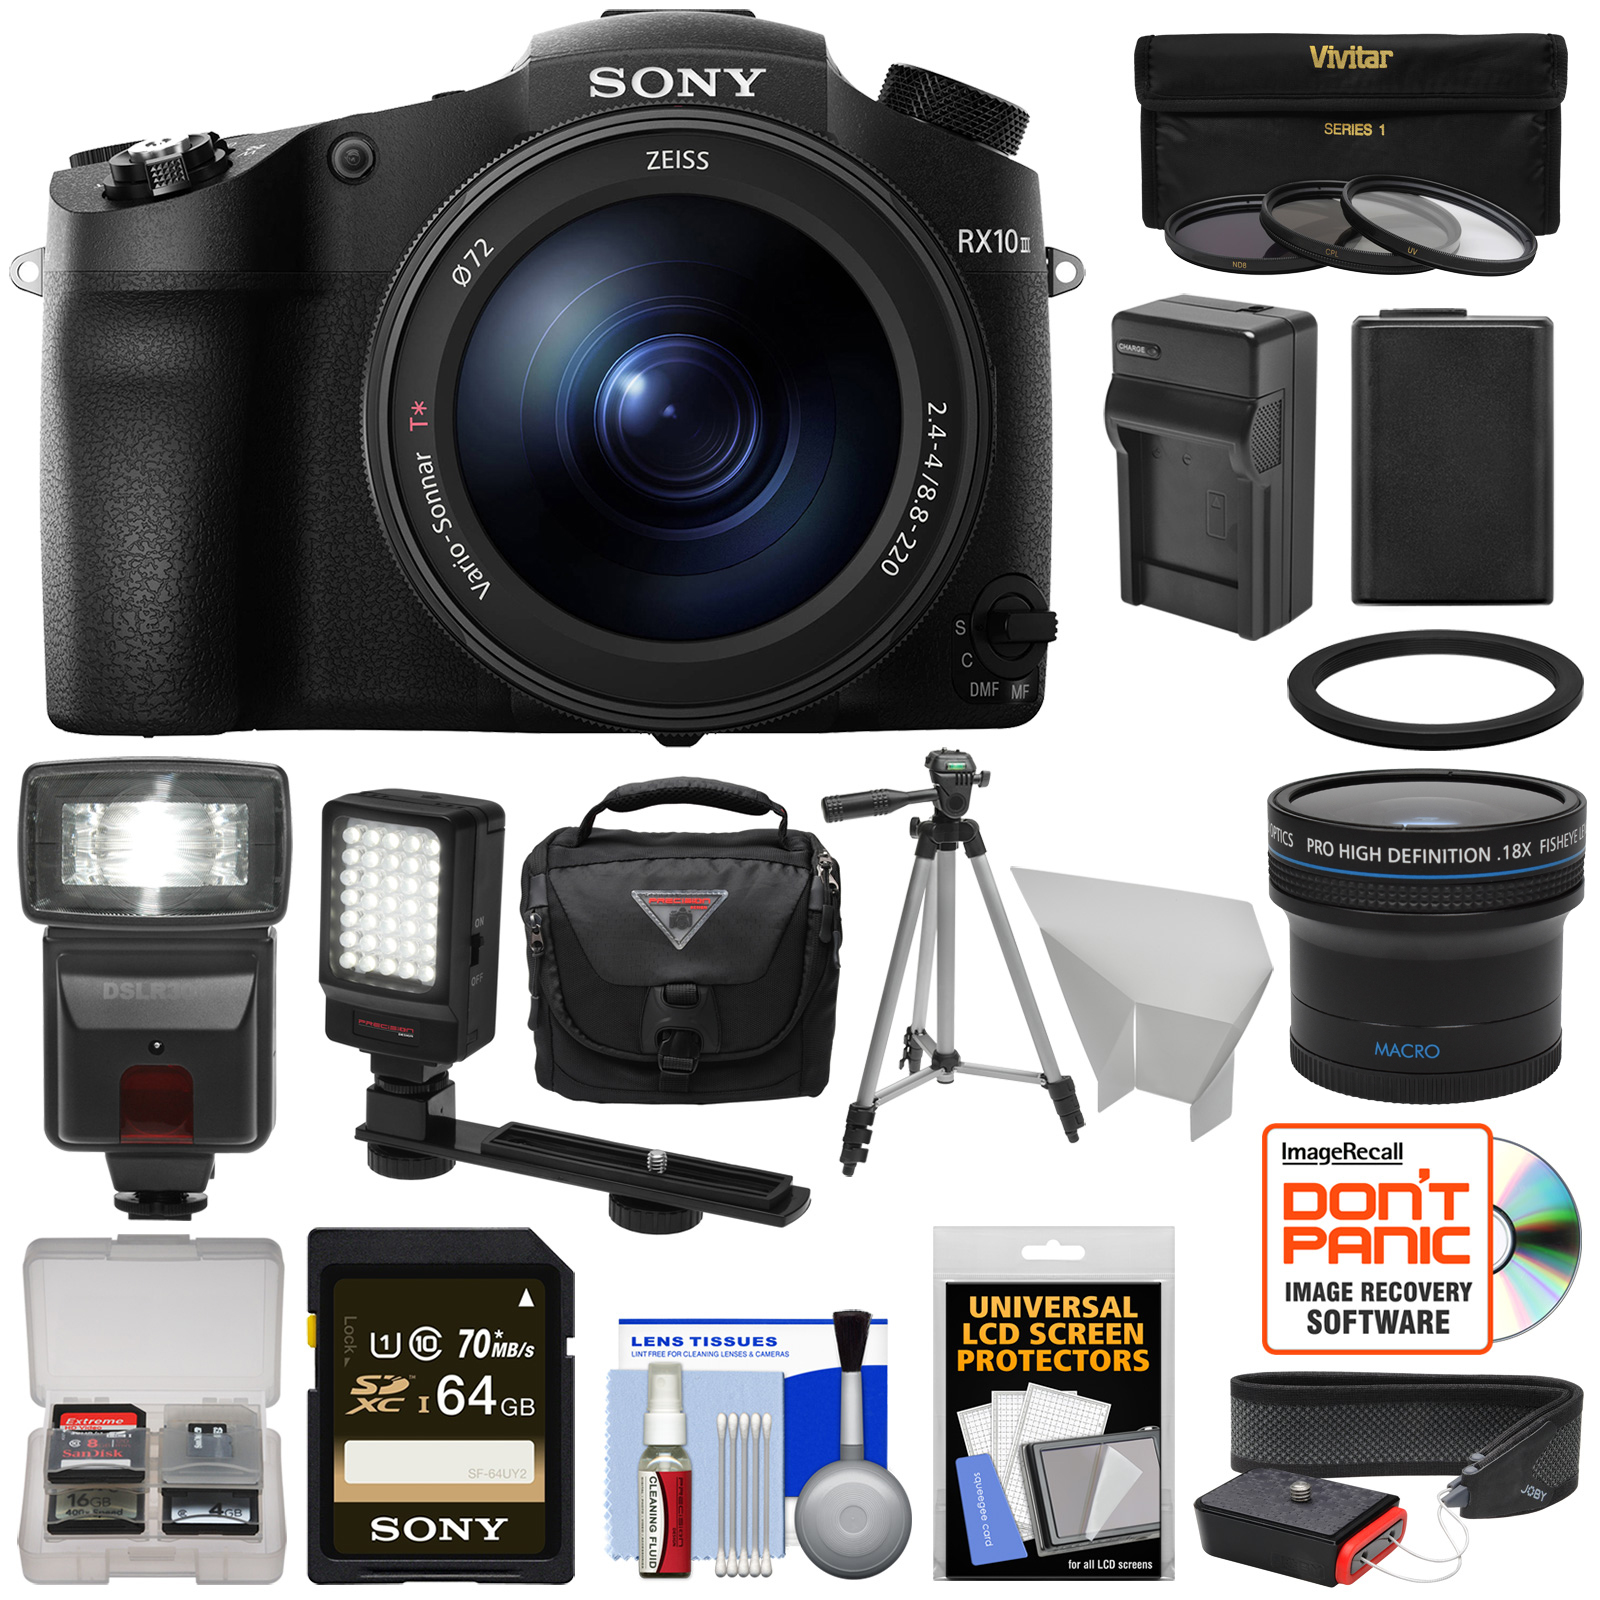 Sony Cyber-Shot DSC-RX10 III 4K Wi-Fi Digital Camera with 64GB Card + Battery & Charger + Case + Tripod +... by Sony